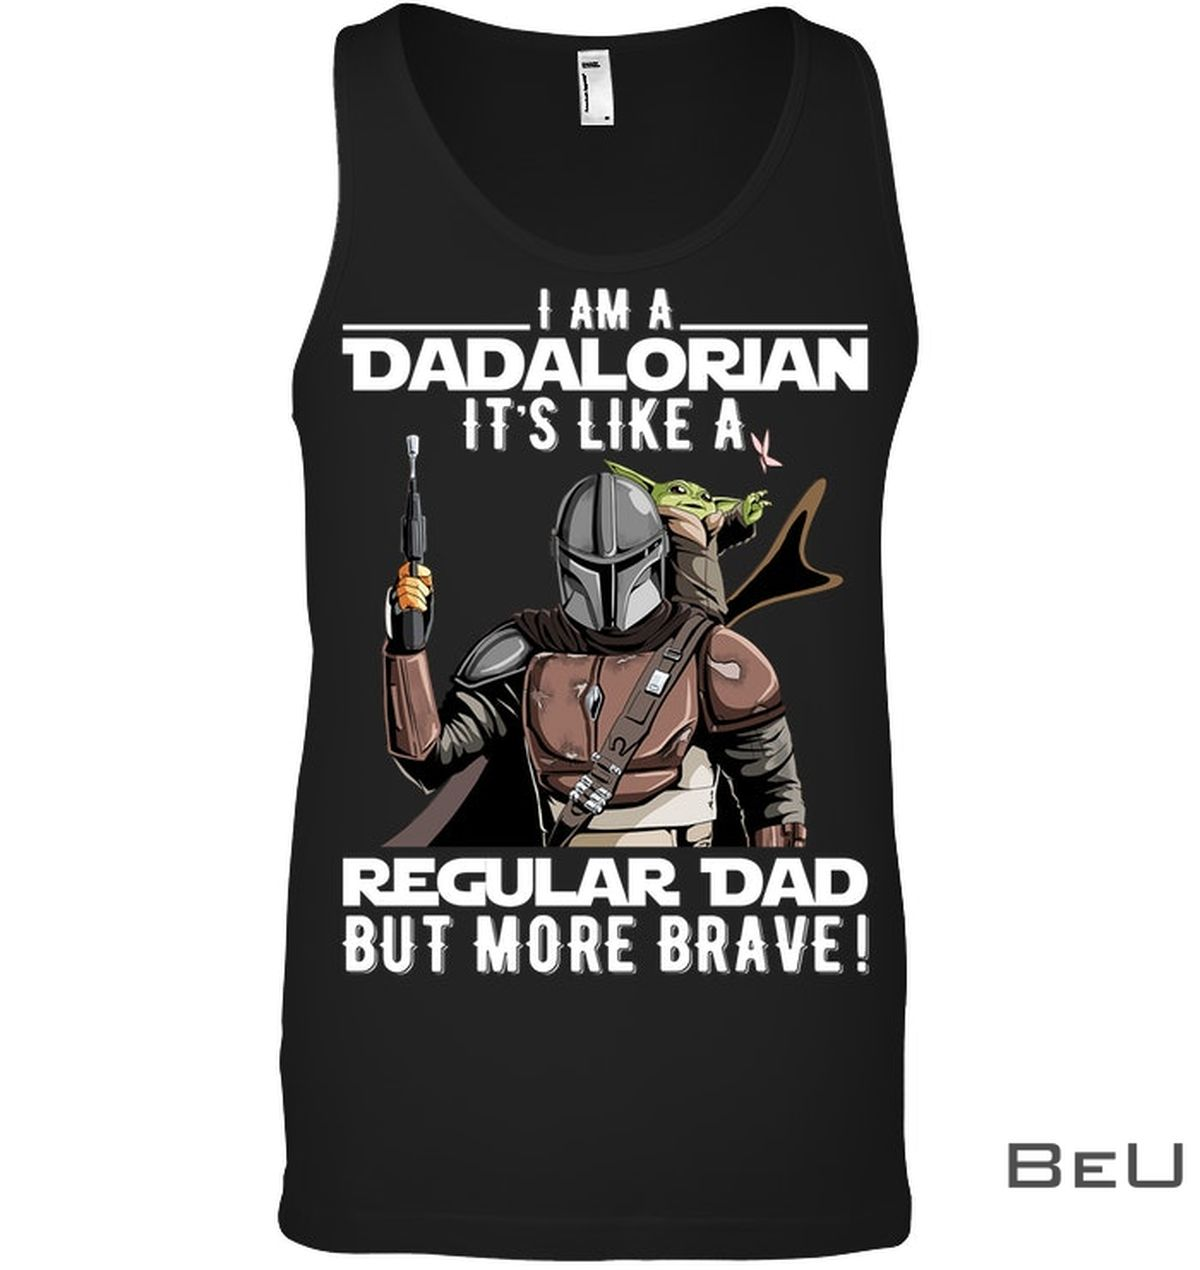 I Am A Dadalorian It's Like A Regular Dad But More Brave Shirtc